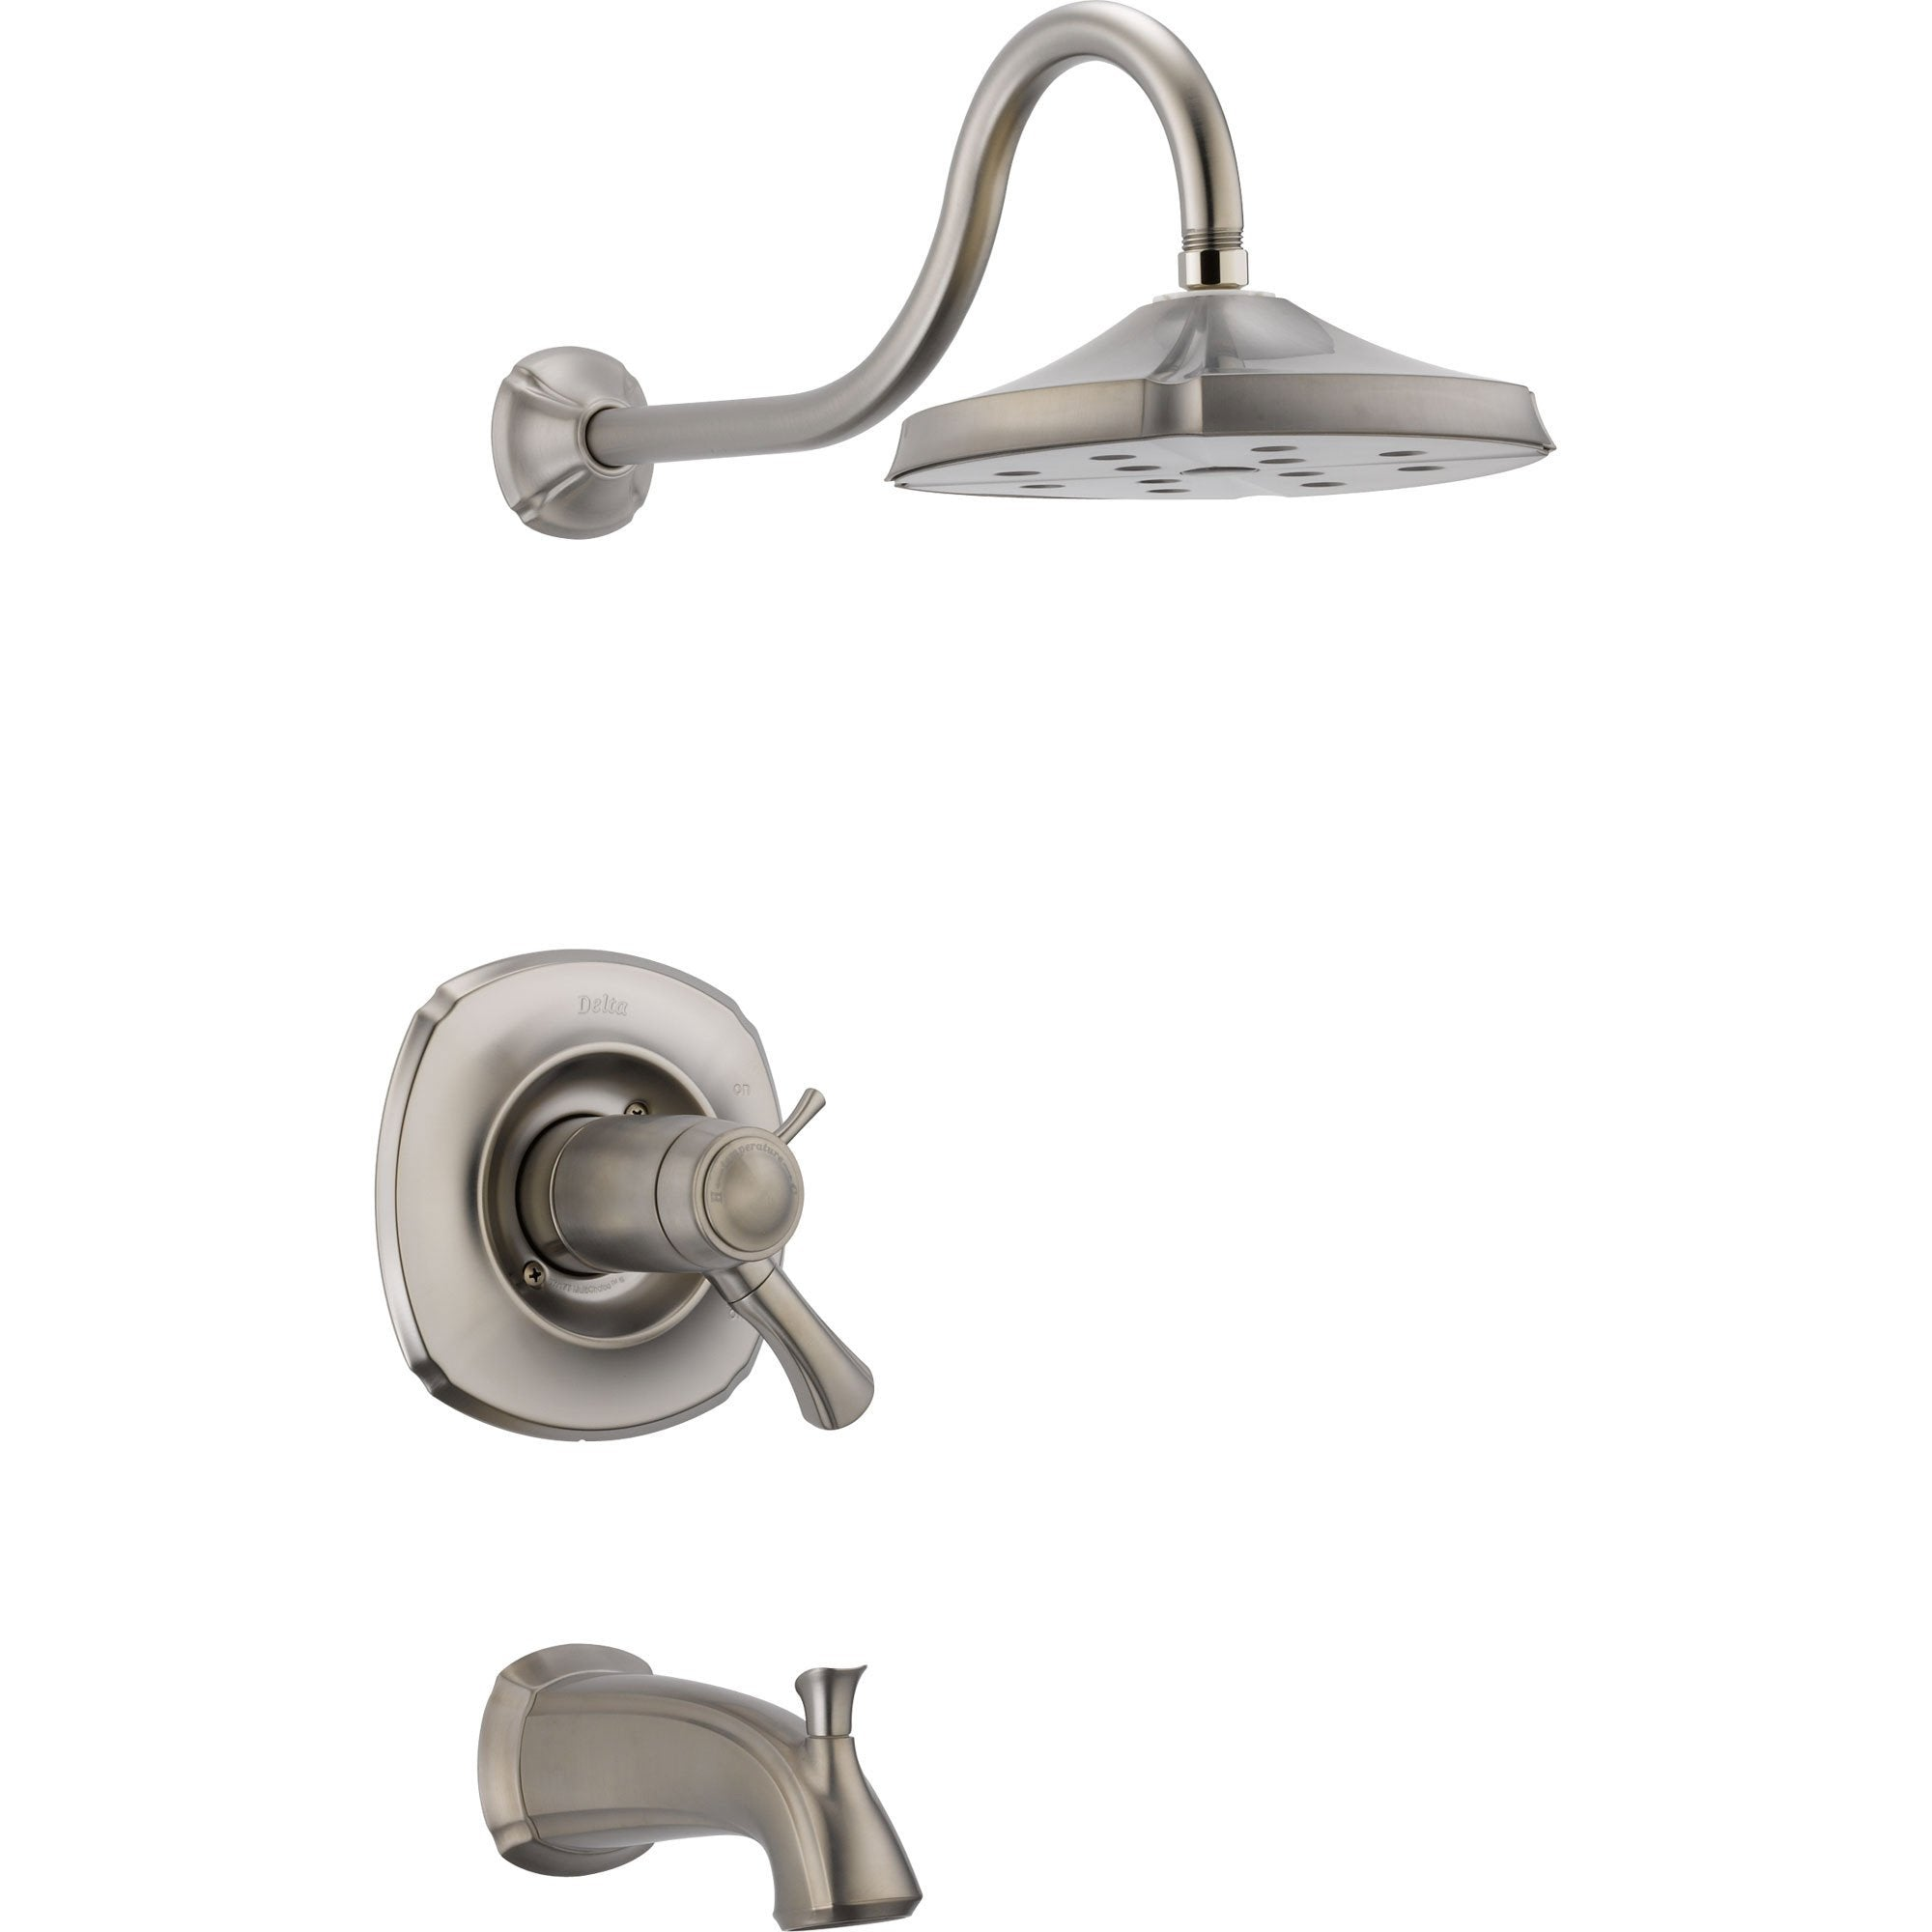 Delta Addison Stainless Steel Finish Thermostatic Tub/Shower with Valve D792V